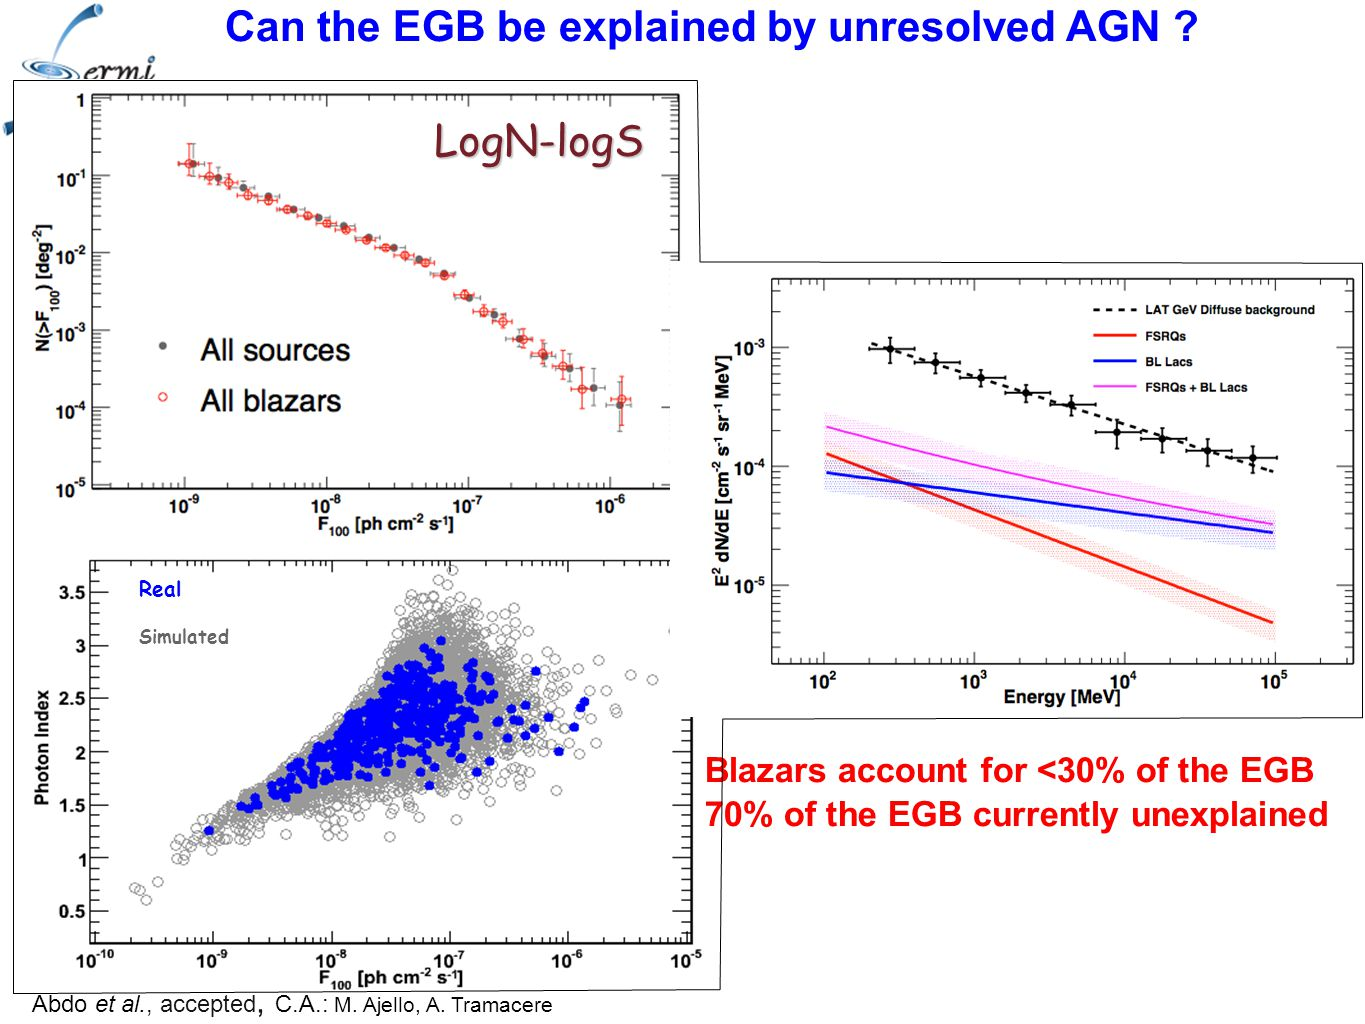 Real Simulated LogN-logS Blazars account for <30% of the EGB 70% of the EGB currently unexplained Can the EGB be explained by unresolved AGN .